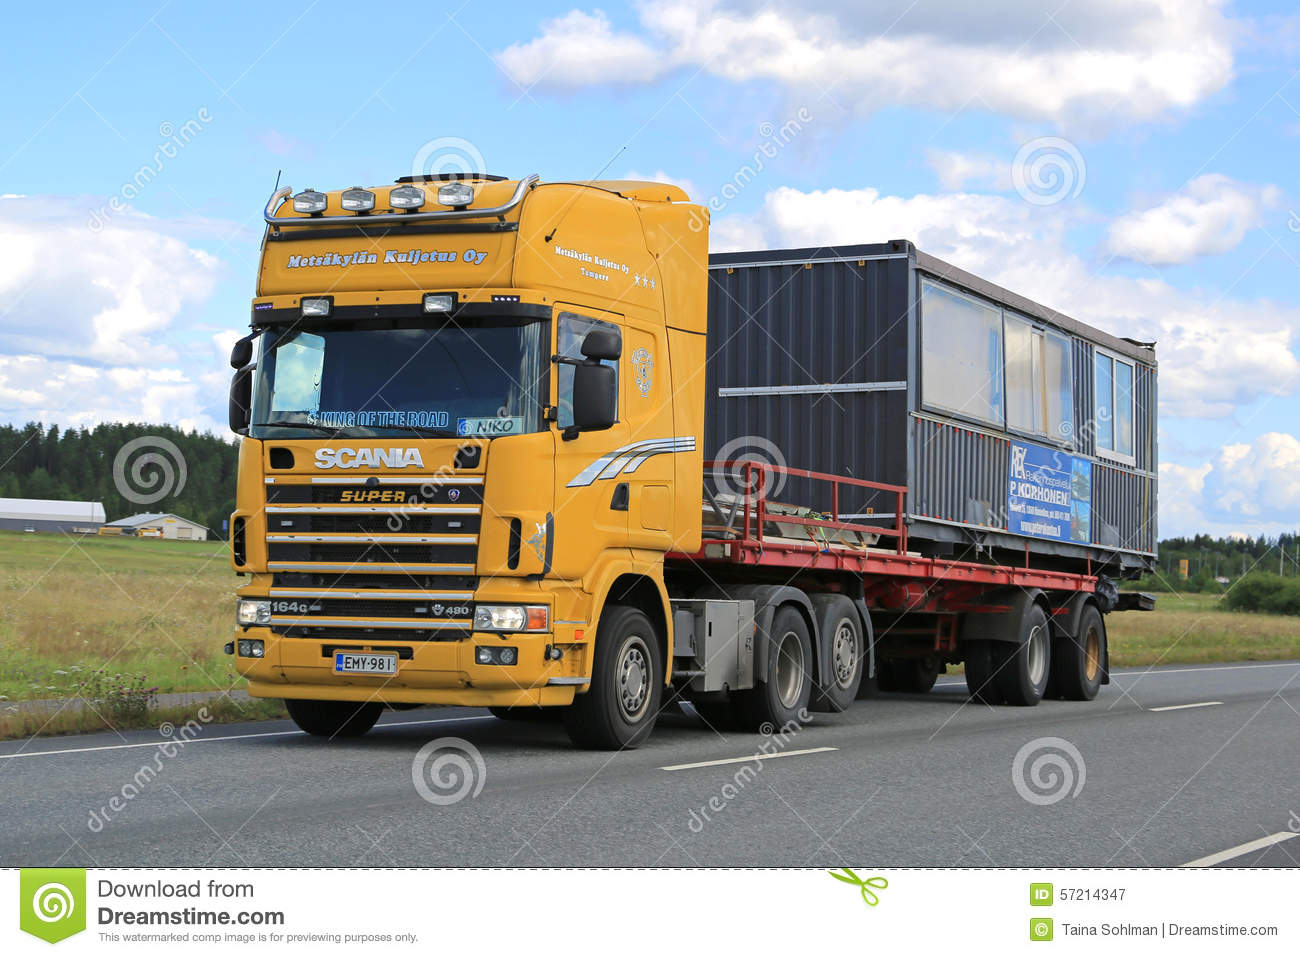 Best Used Diesel Truck >> Yellow Scania 164G Truck Hauls Portable Cabin Editorial Photo | CartoonDealer.com #57214347